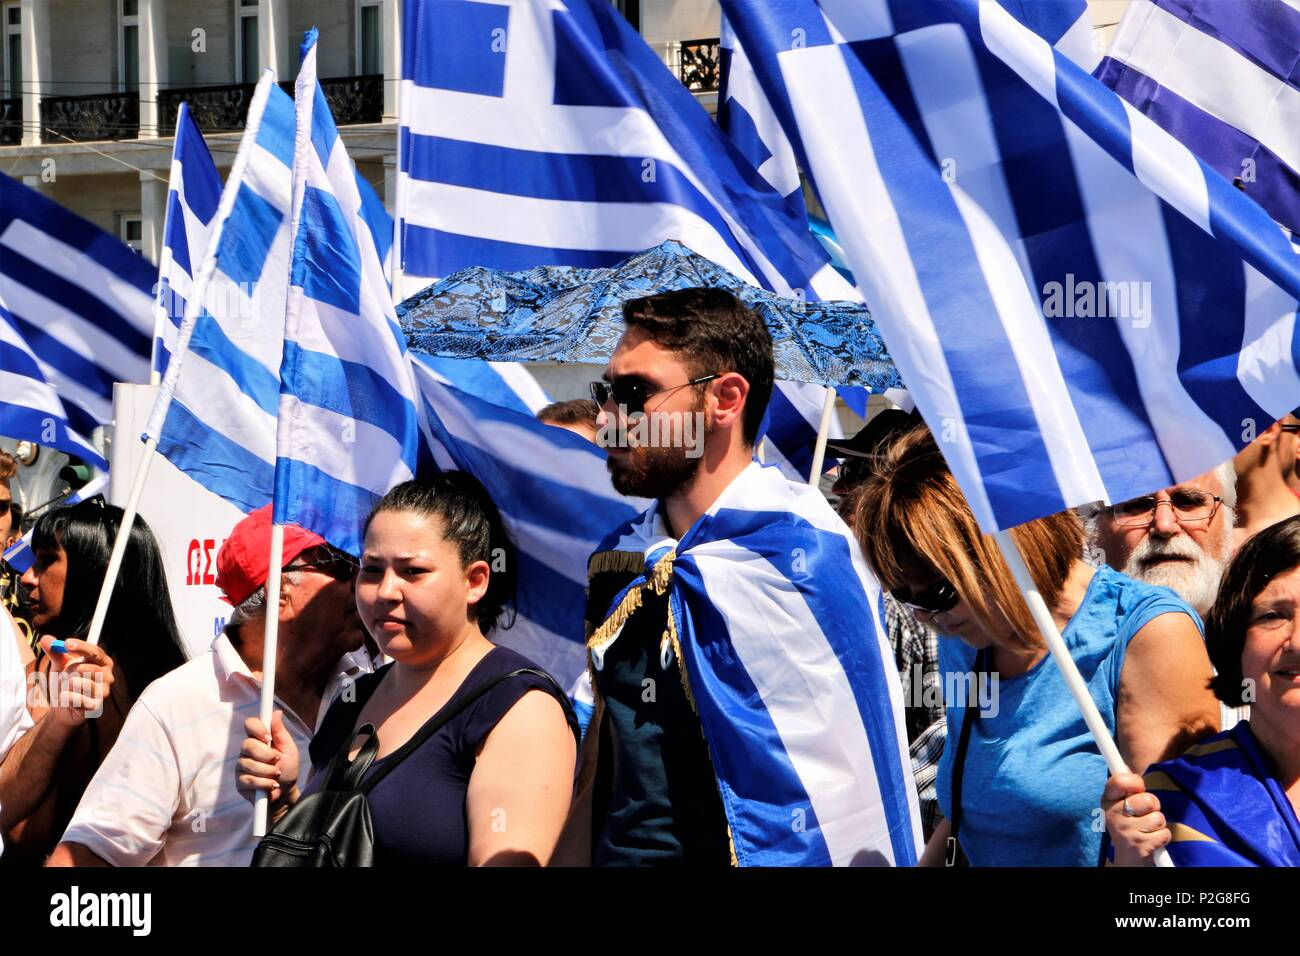 Athens Greece 15th June 2018 Protesters Holding Flags During The